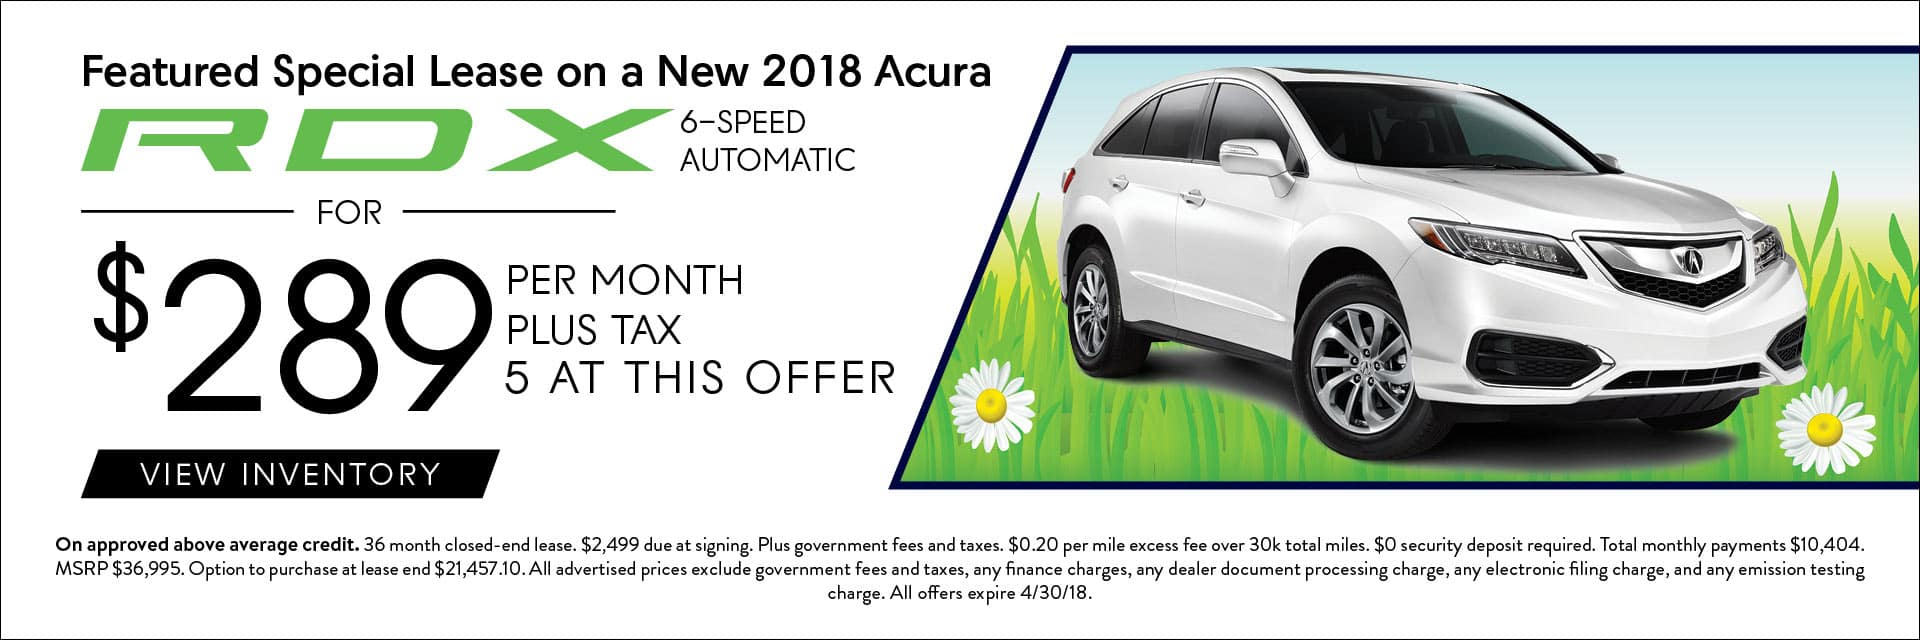 2018 Acura RDX Lease Offers